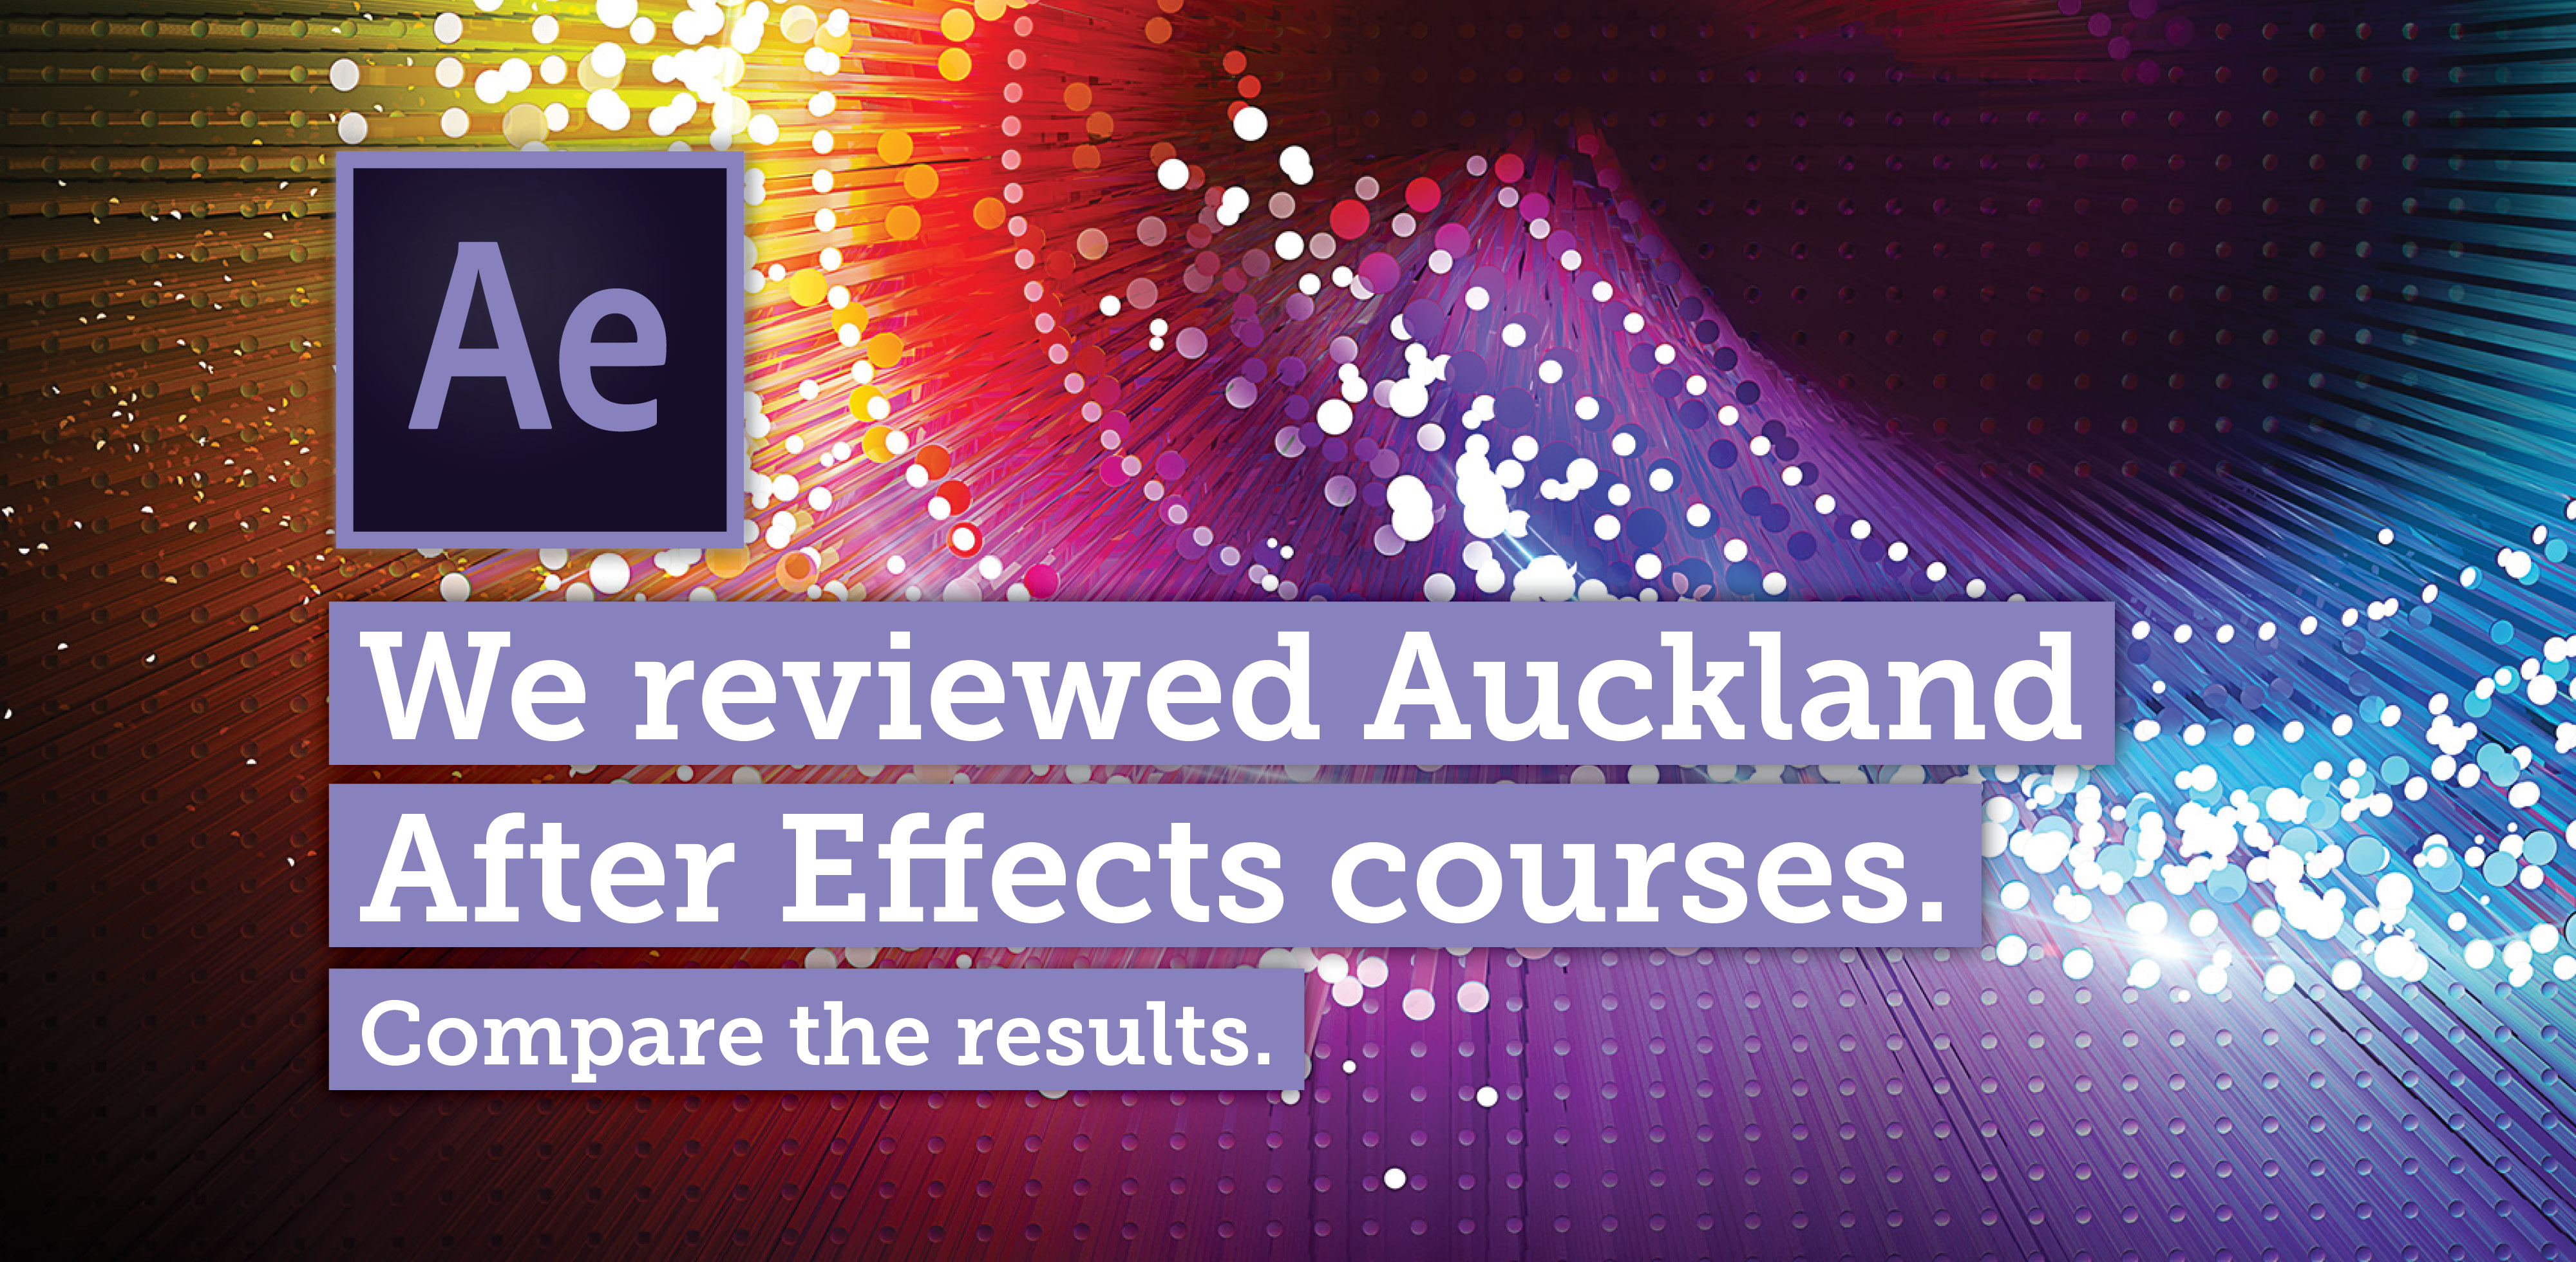 AfterEffects Courses Auckland